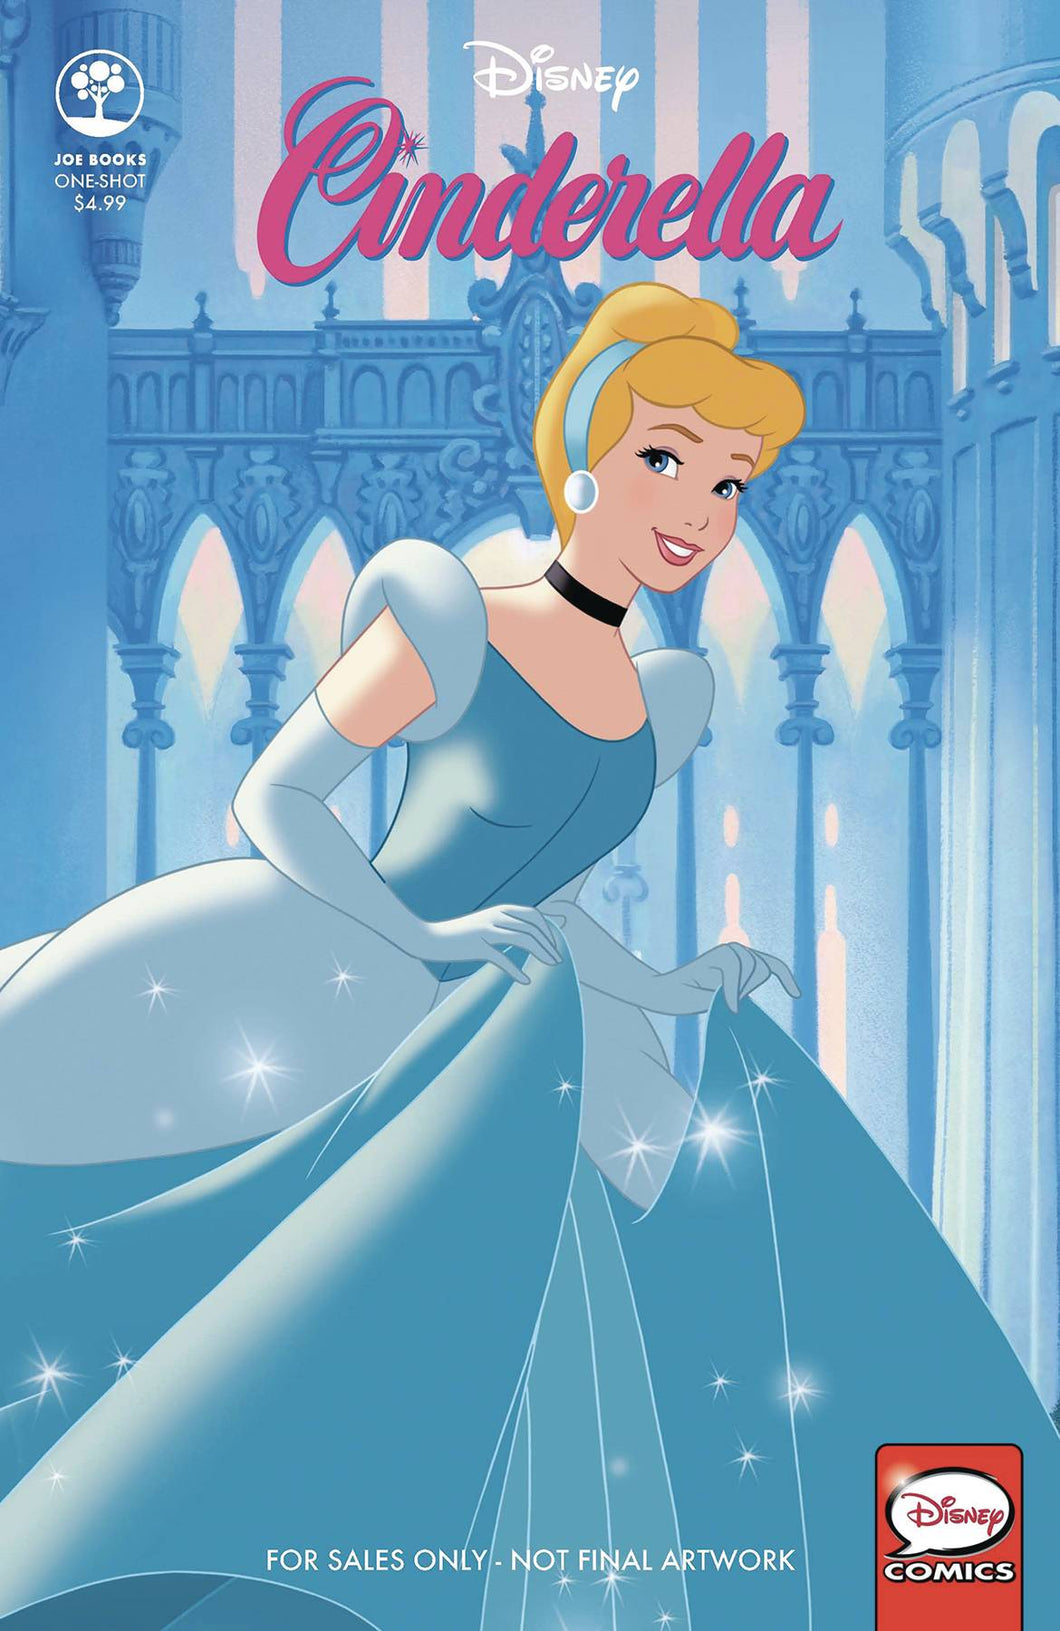 DISNEY CINDERELLA ONE SHOT